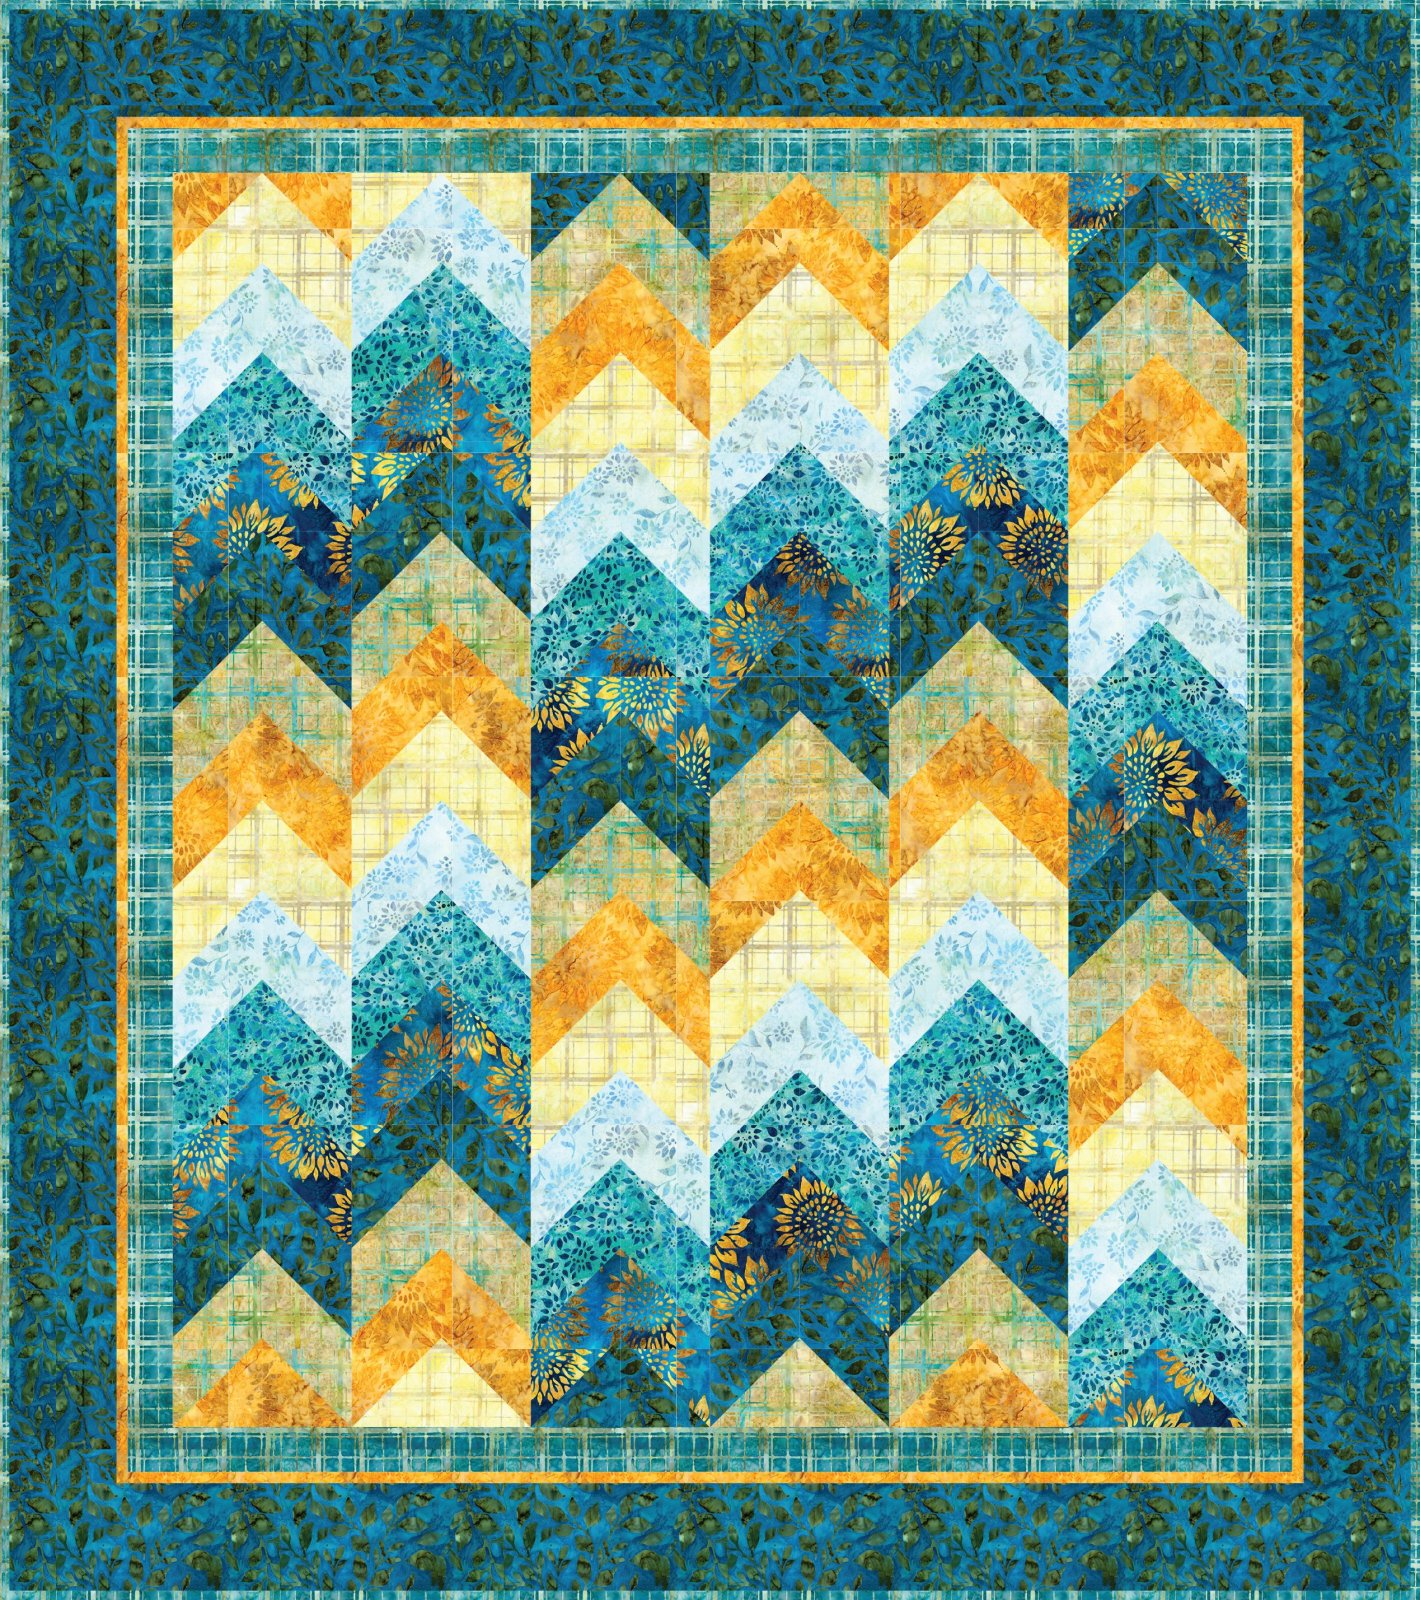 Peeks and Valleys Quilt Pattern by Mountainpeek Creations